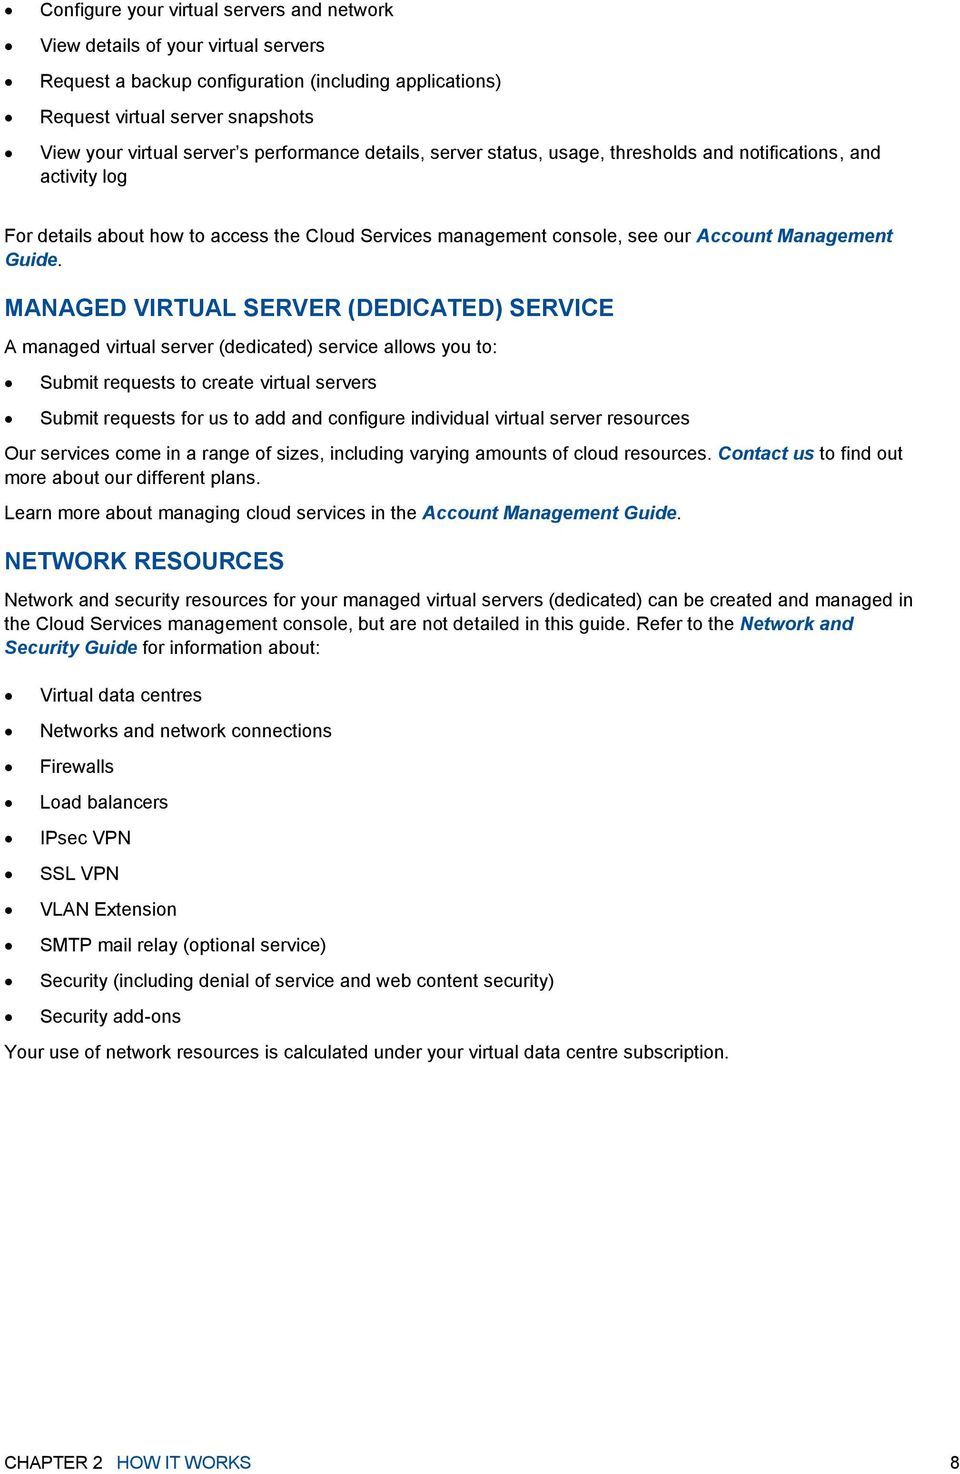 MANAGED VIRTUAL SERVER (DEDICATED) SERVICE A managed virtual server (dedicated) service allows you to: Submit requests to create virtual servers Submit requests for us to add and configure individual